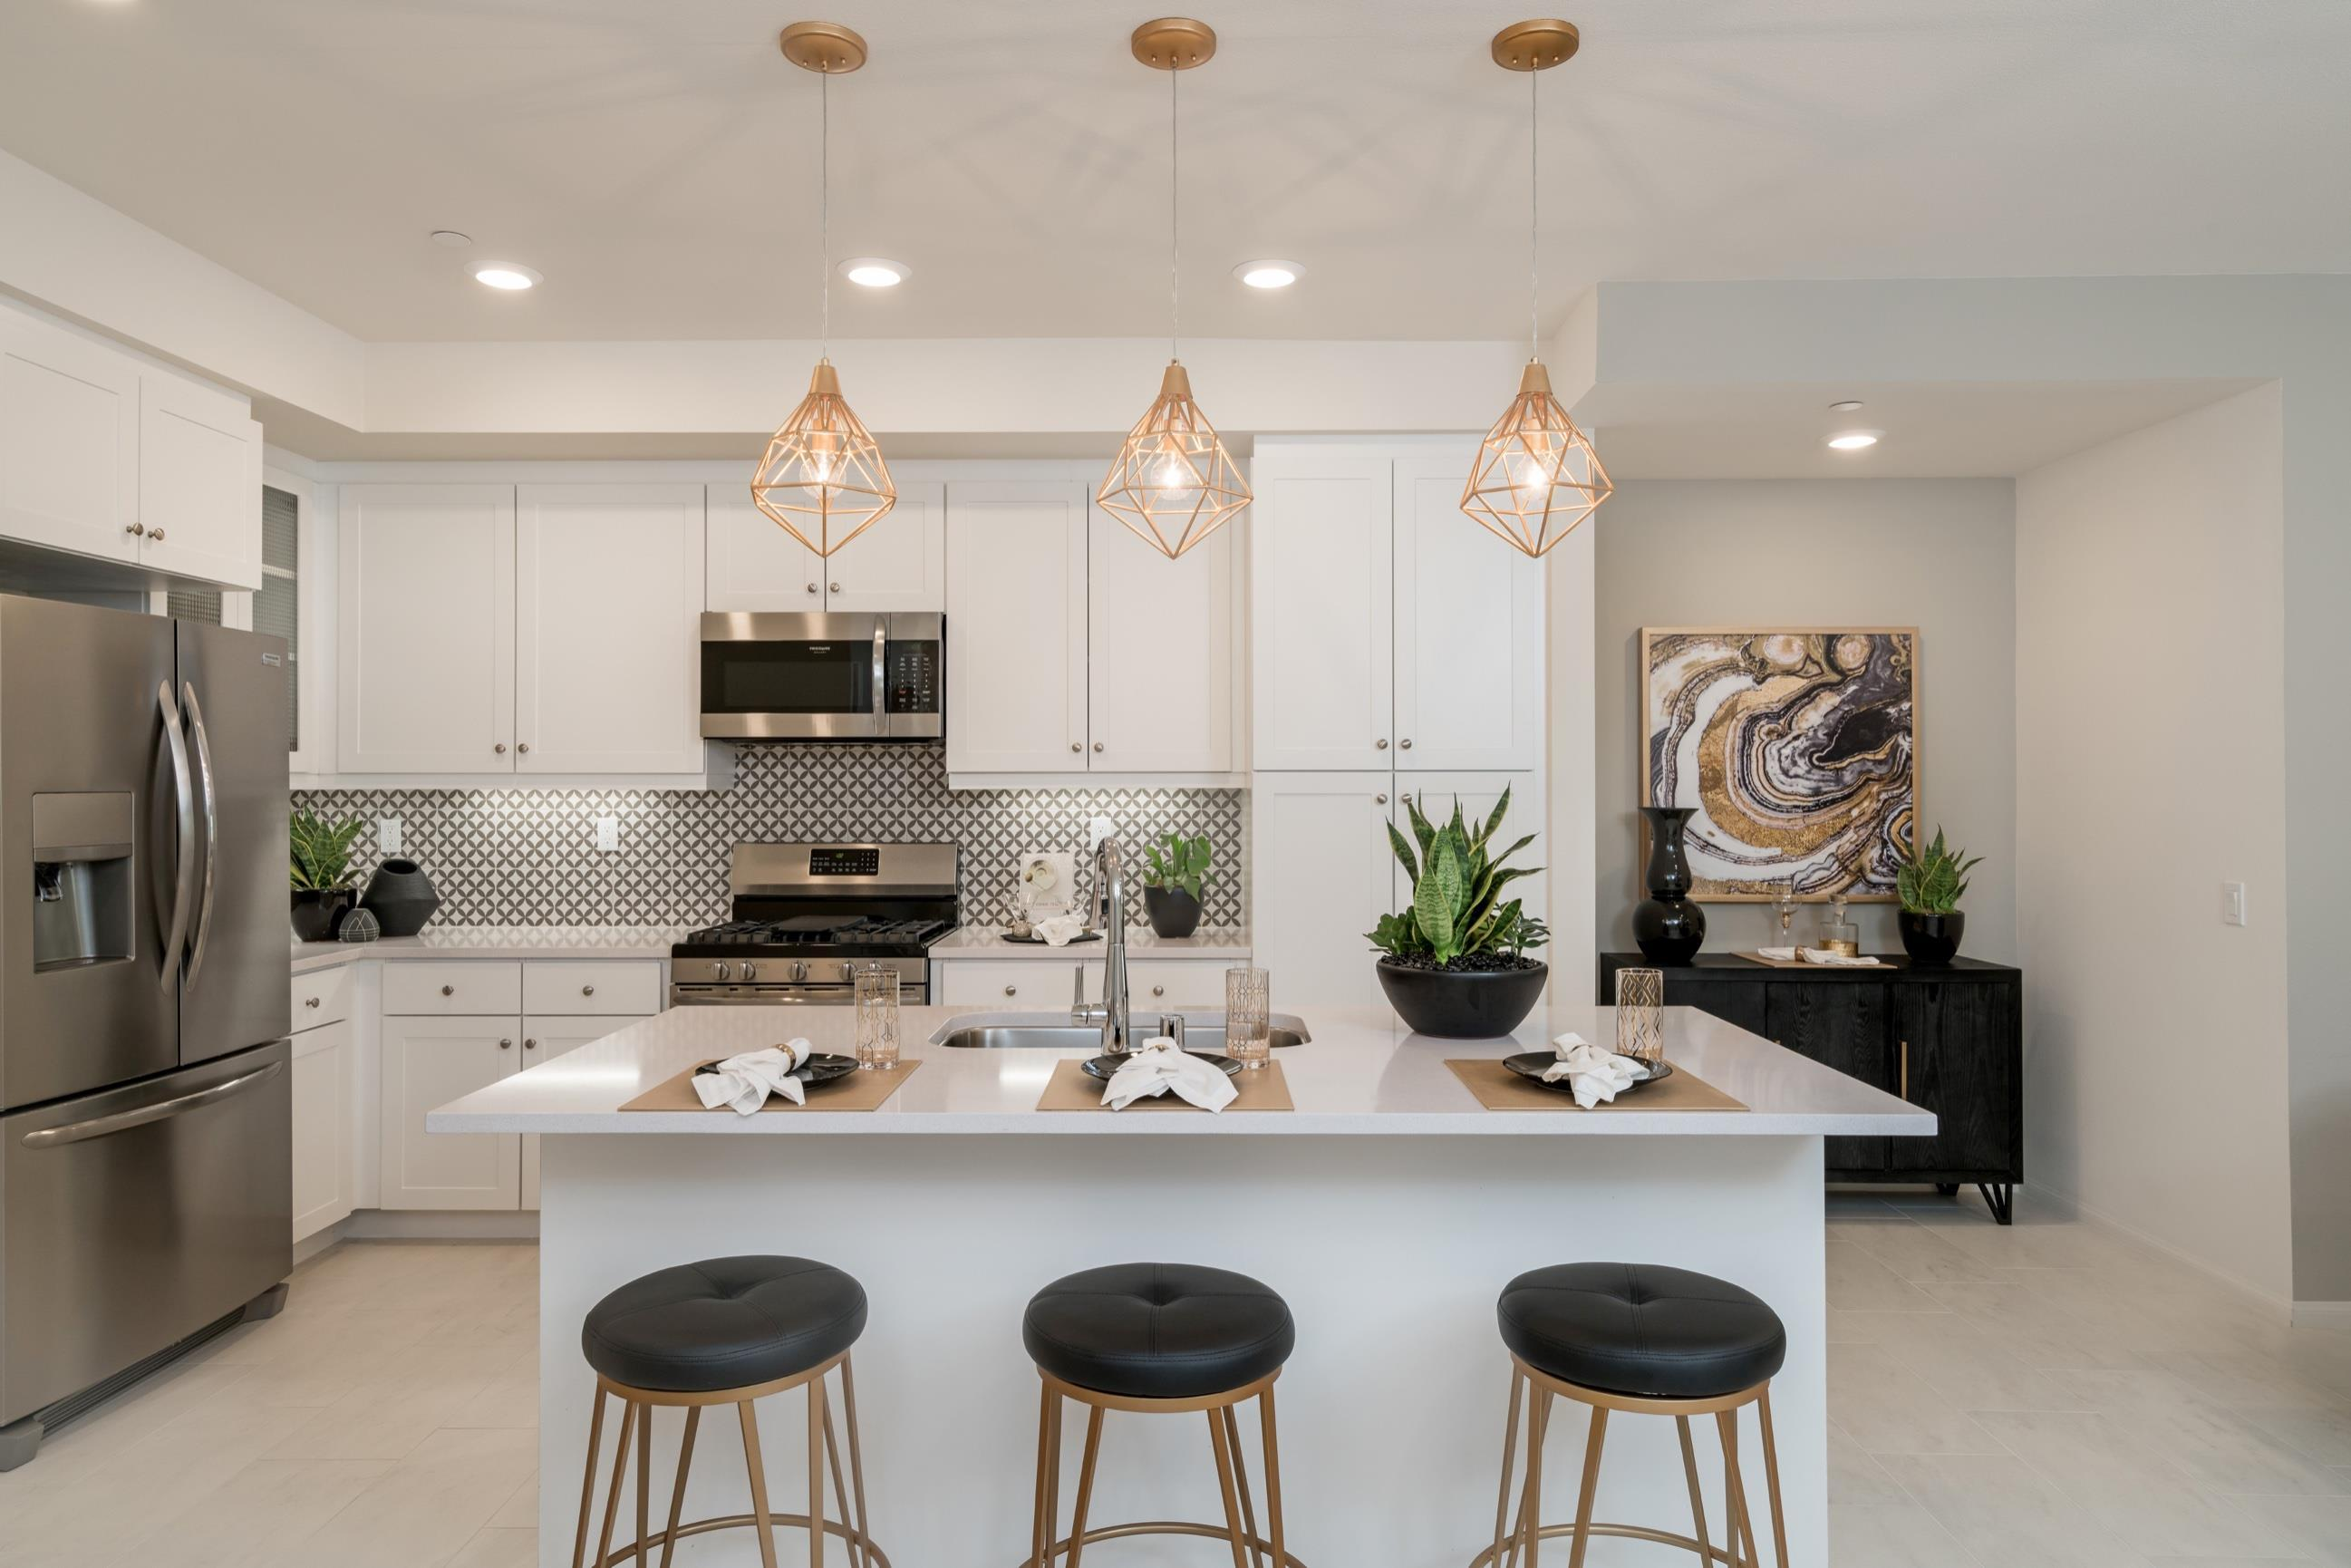 Kitchen featured in the Plan 6 By Heritage Building & Dev't in San Diego, CA